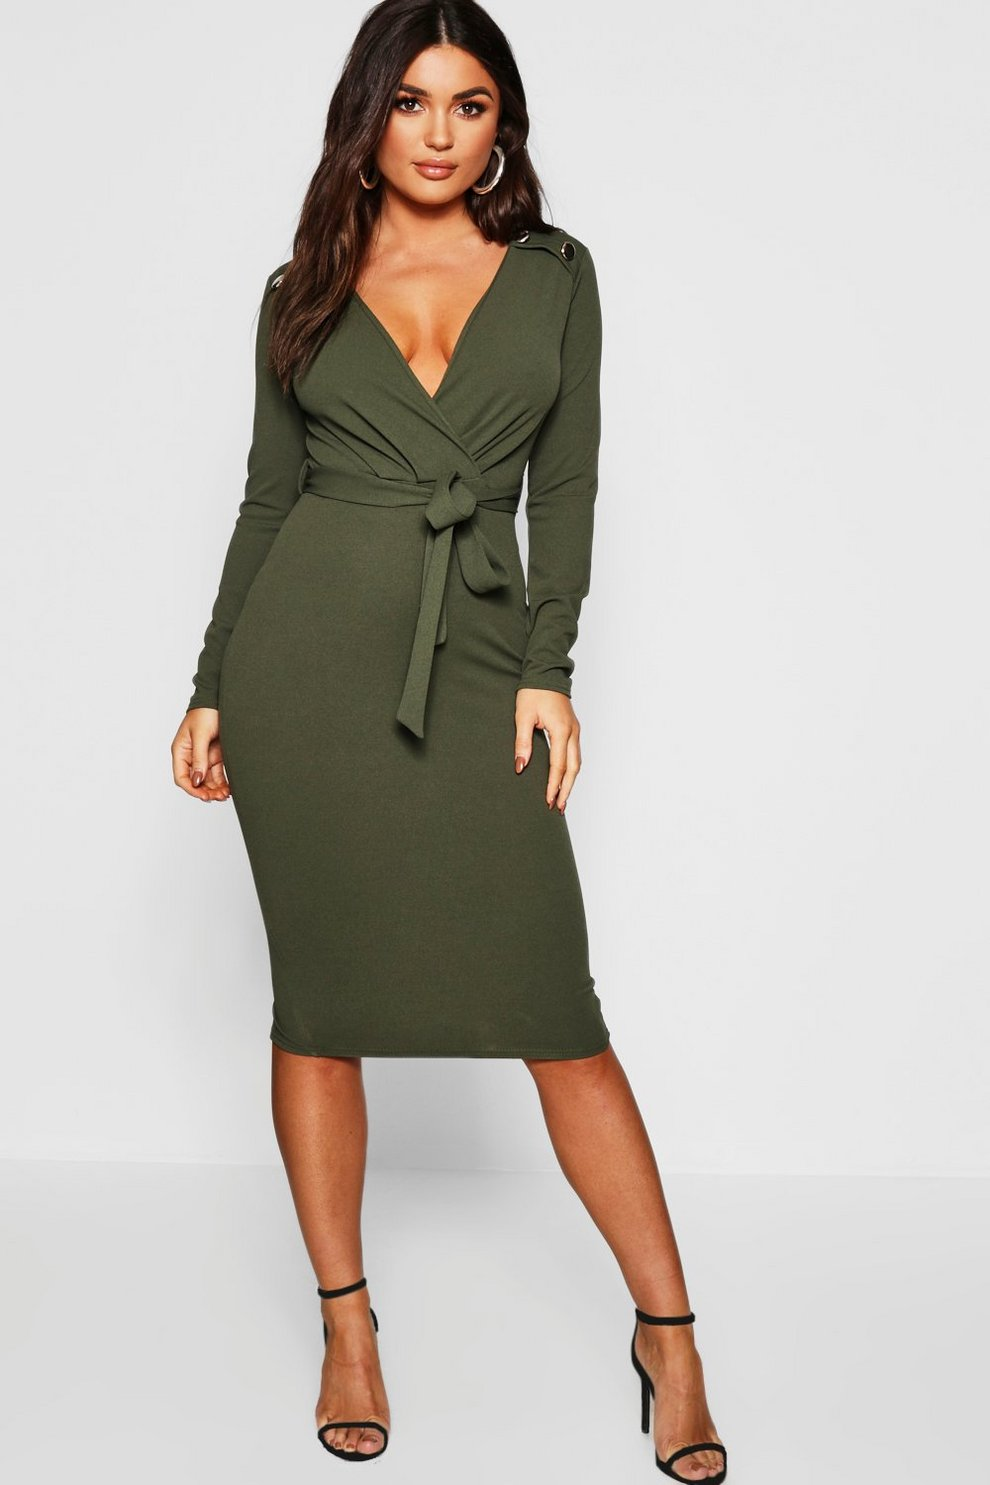 ece4d1cb08bc Womens Khaki Button Shoulder Belted Midi Dress. Hover to zoom